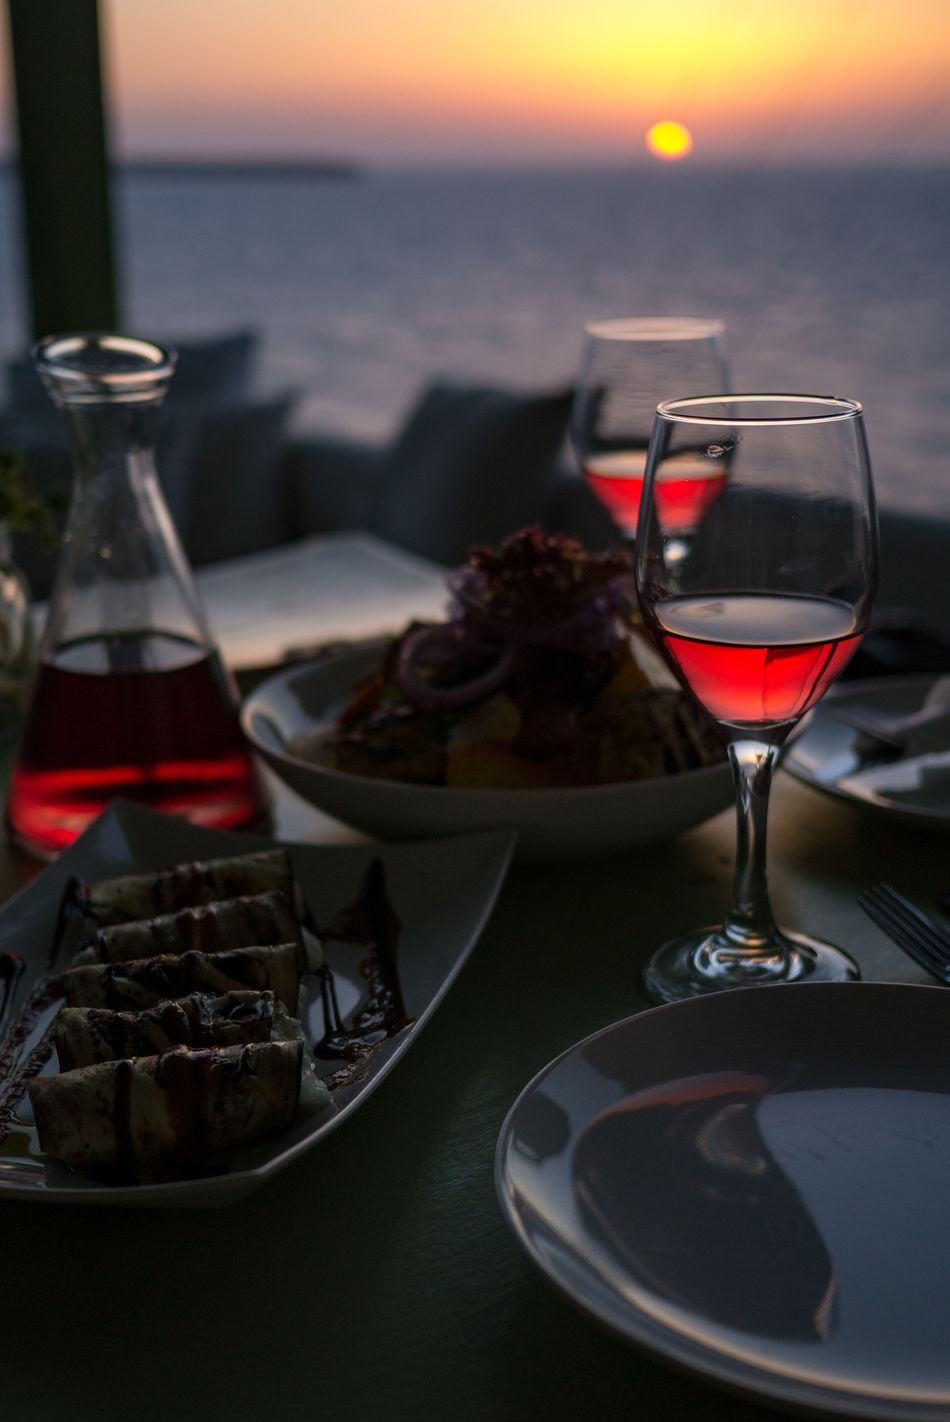 A good glas of wine should be shared. Preferably with the one you love. Alcohol Close-up Dinner For Two Drink Food And Drink Greece Katharos Lounge Love Mediteranean No People Romance Santorini Sunset Together Two Glasses Valentine's Day  Wine Wine Moments Wineglass